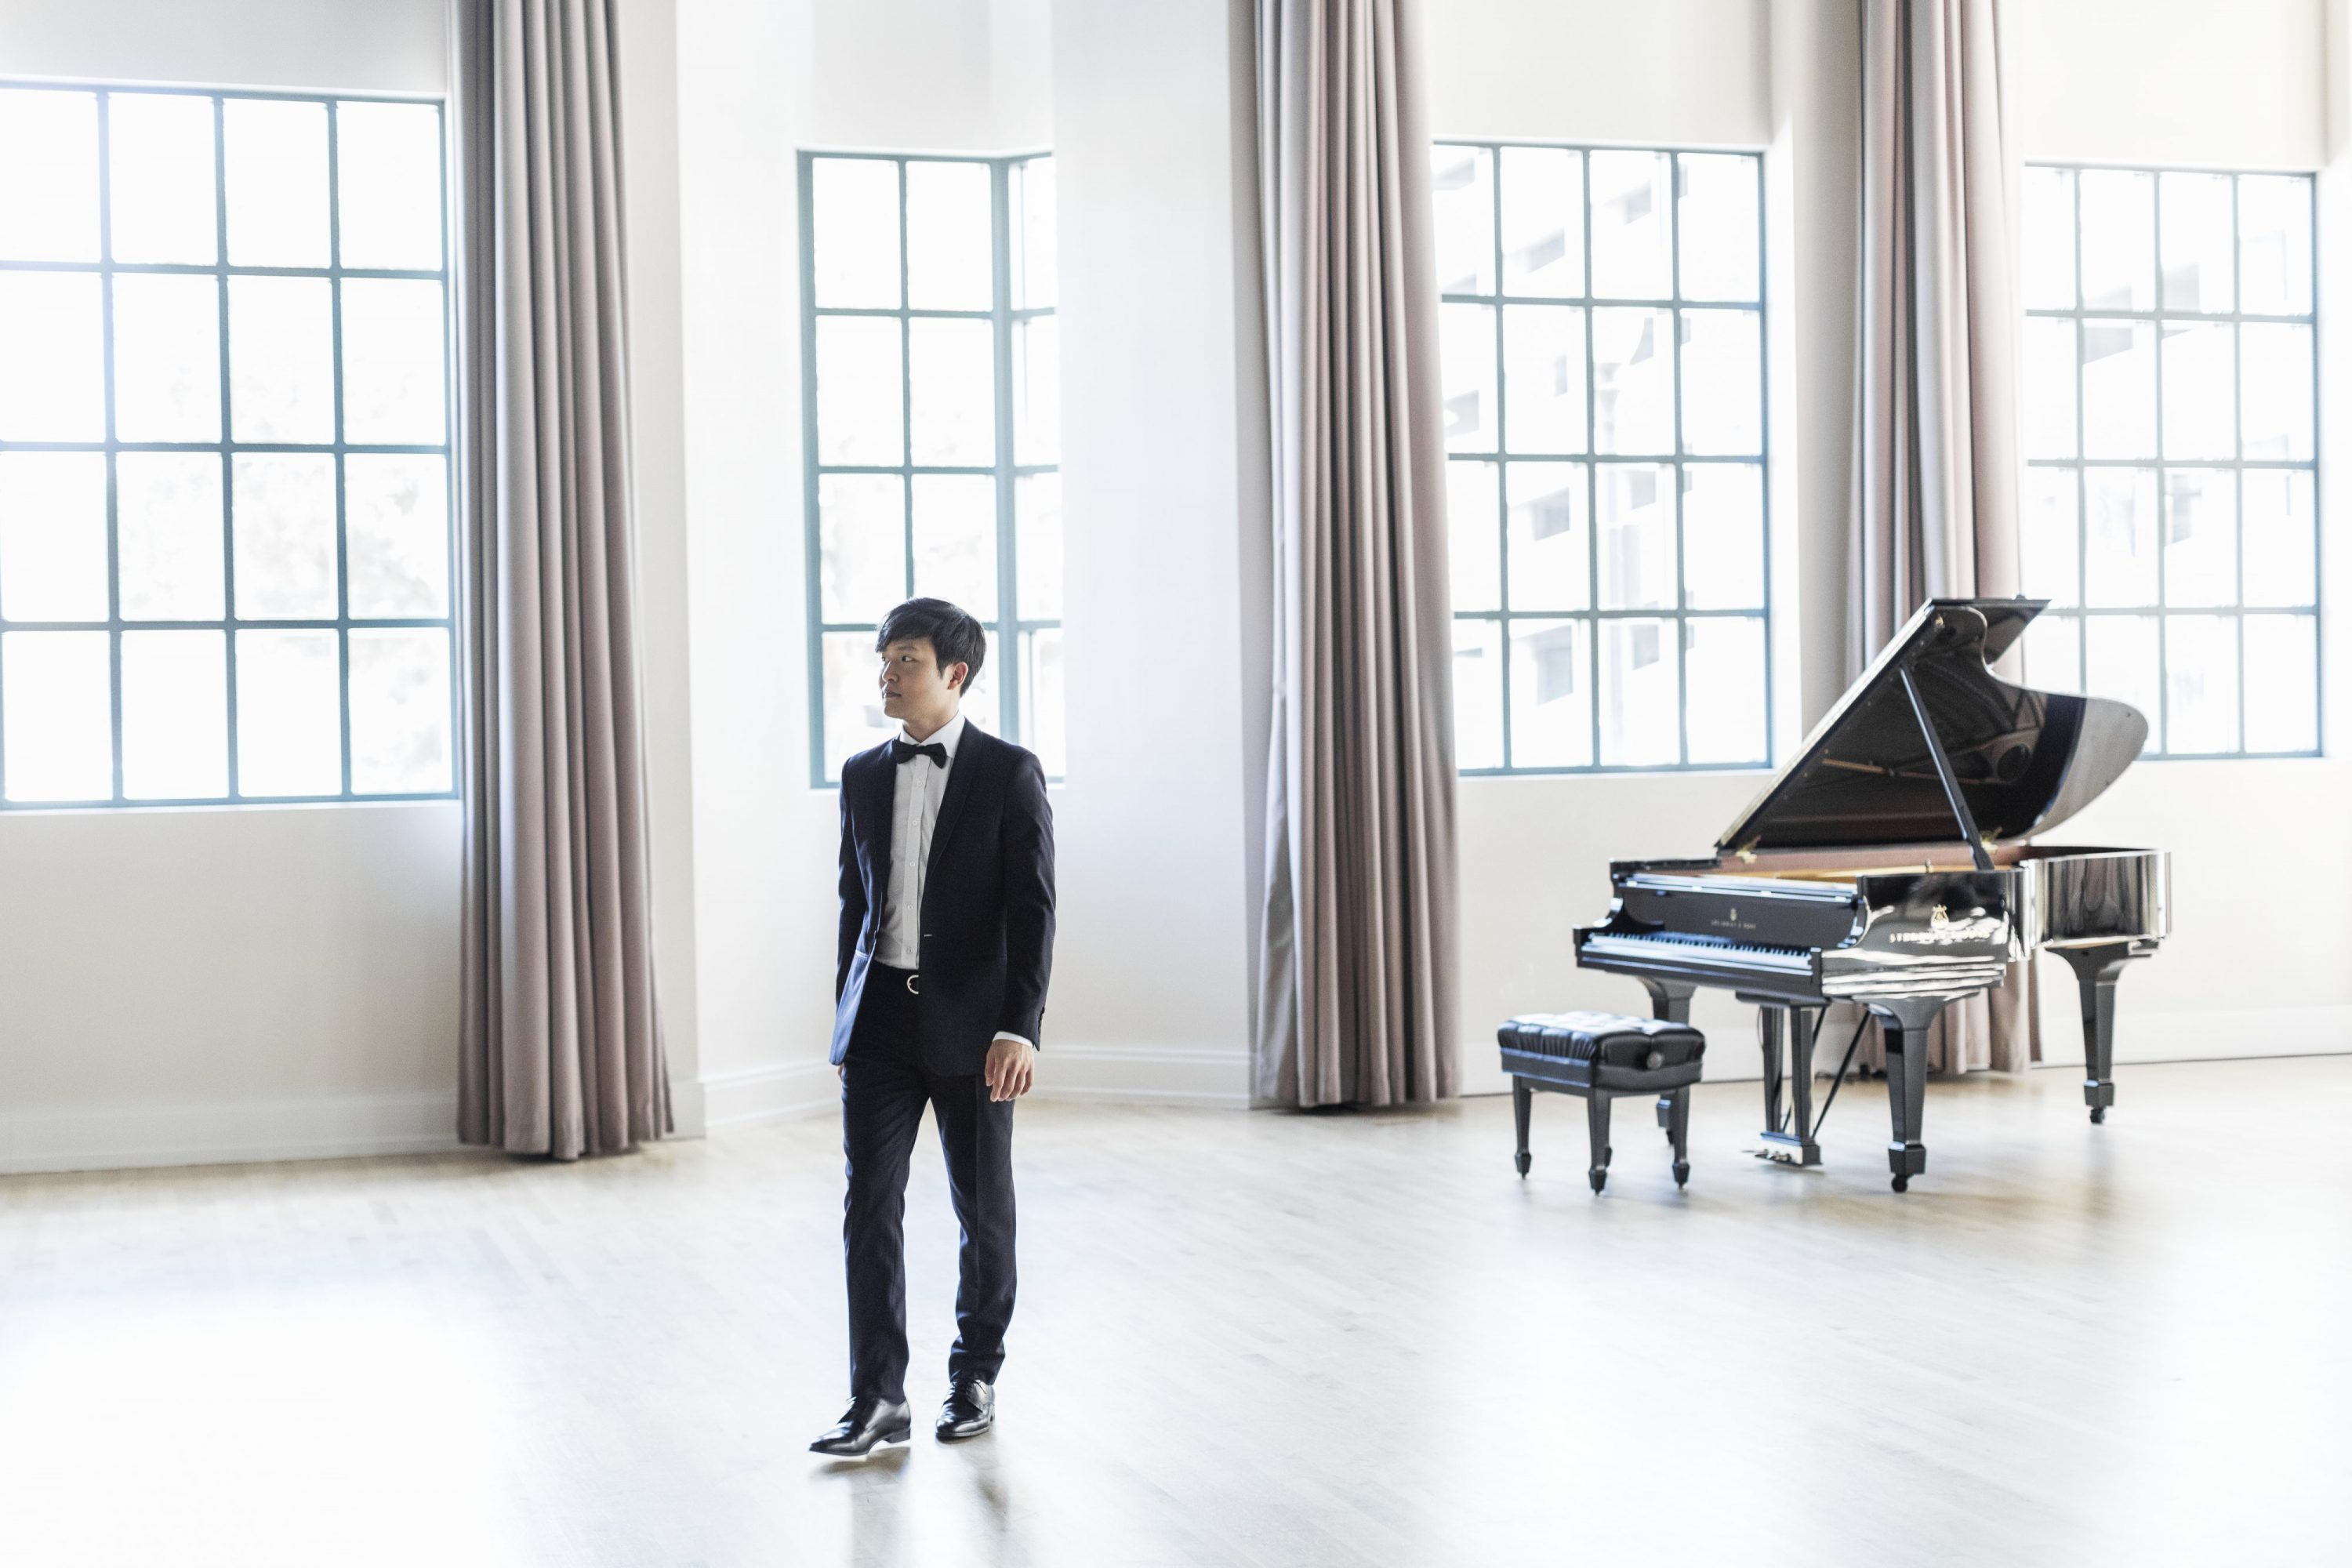 Yekwon Sunwoo in Hall with Piano